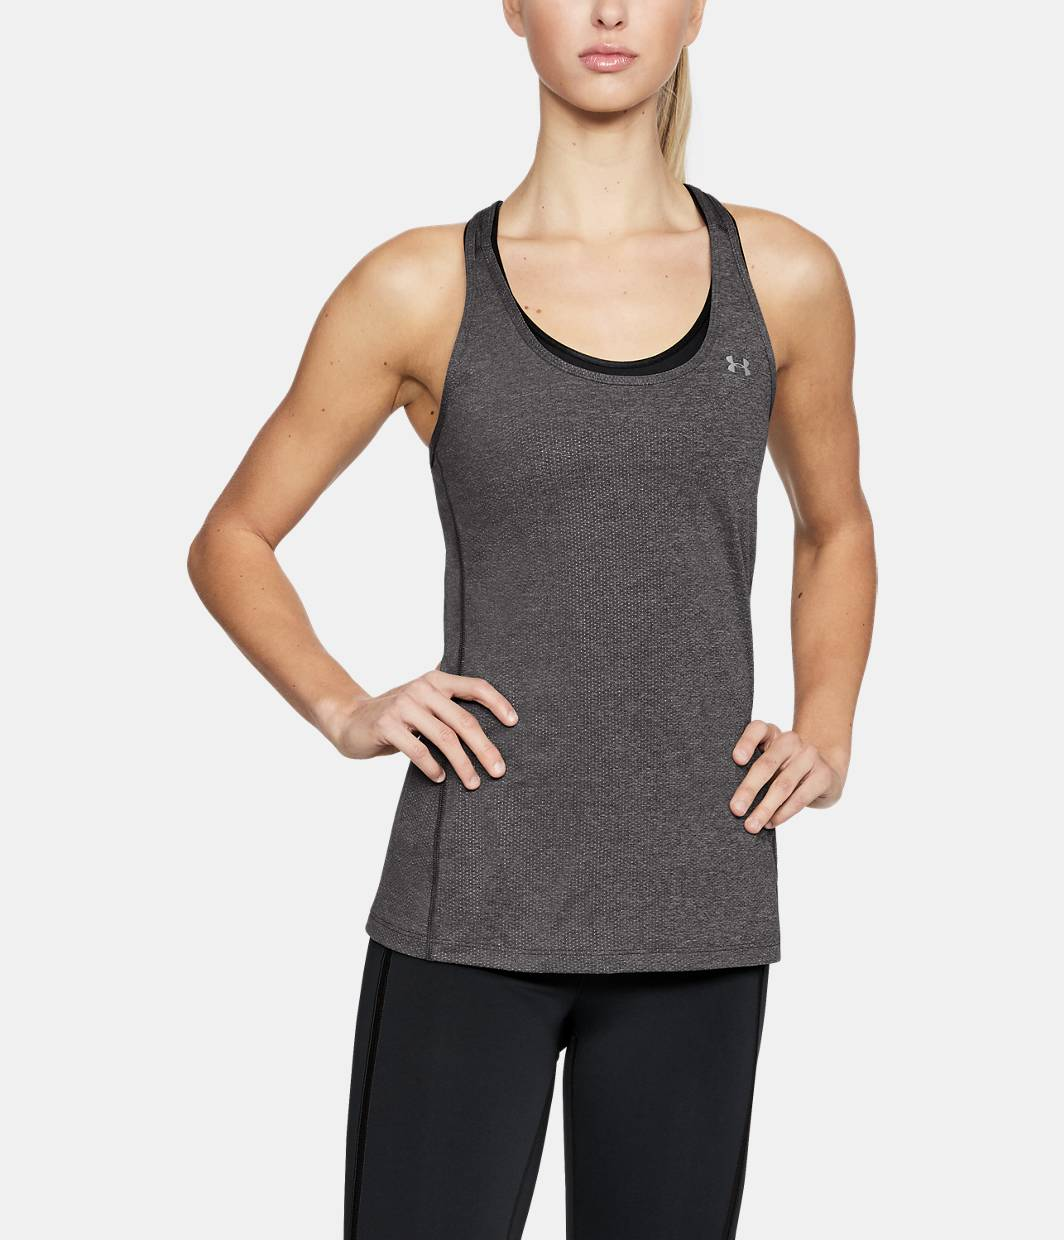 Women's Workout Shirts & Tanks   Under Armour US